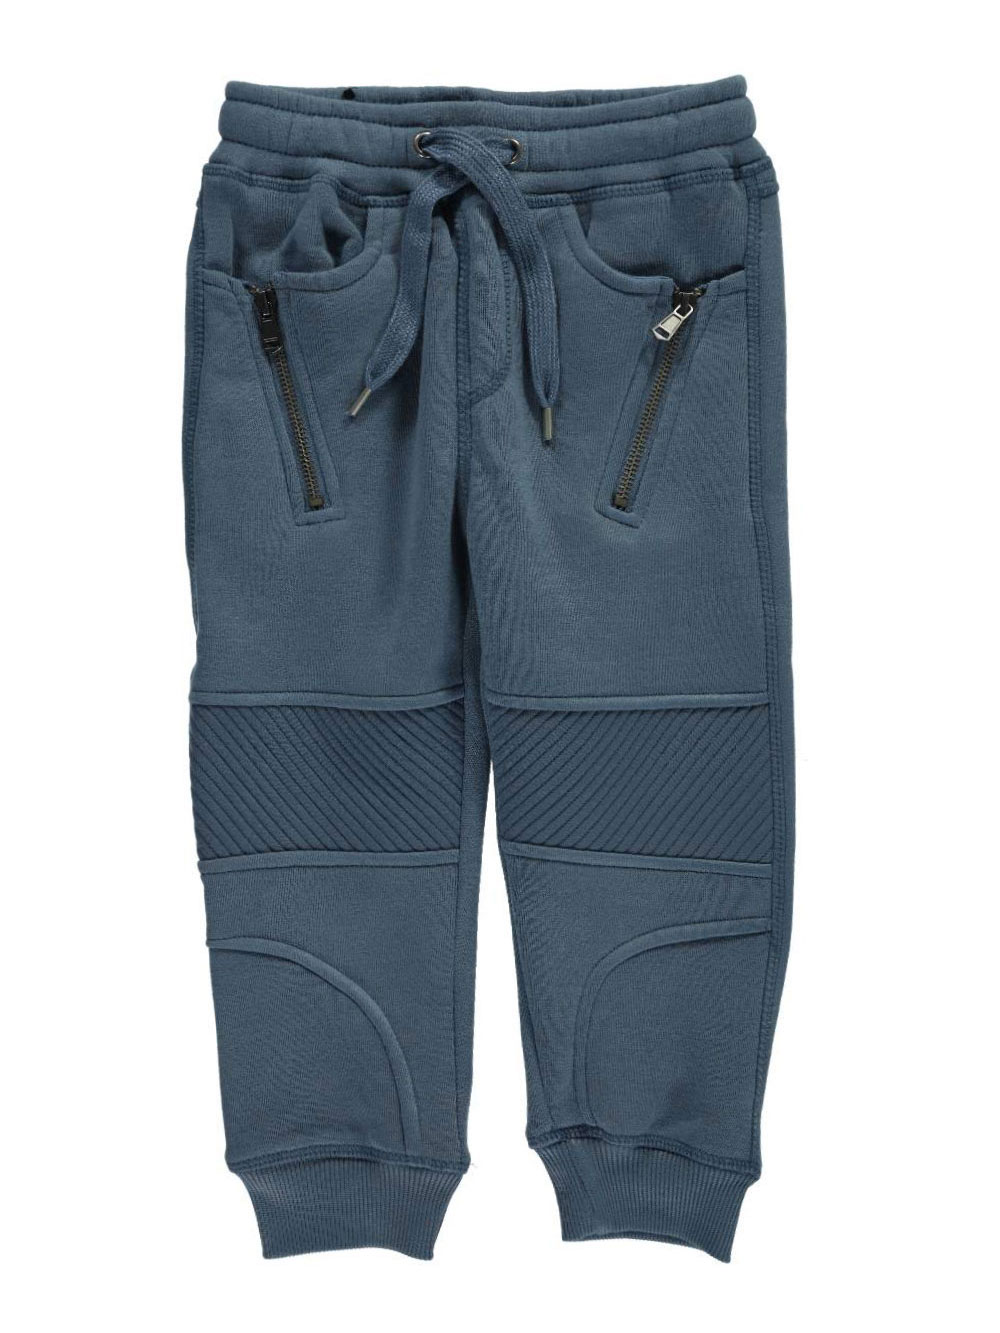 Image of LR Scoop Little Boys Ribbed  Seamed Joggers Sizes 4  6X  navy 4